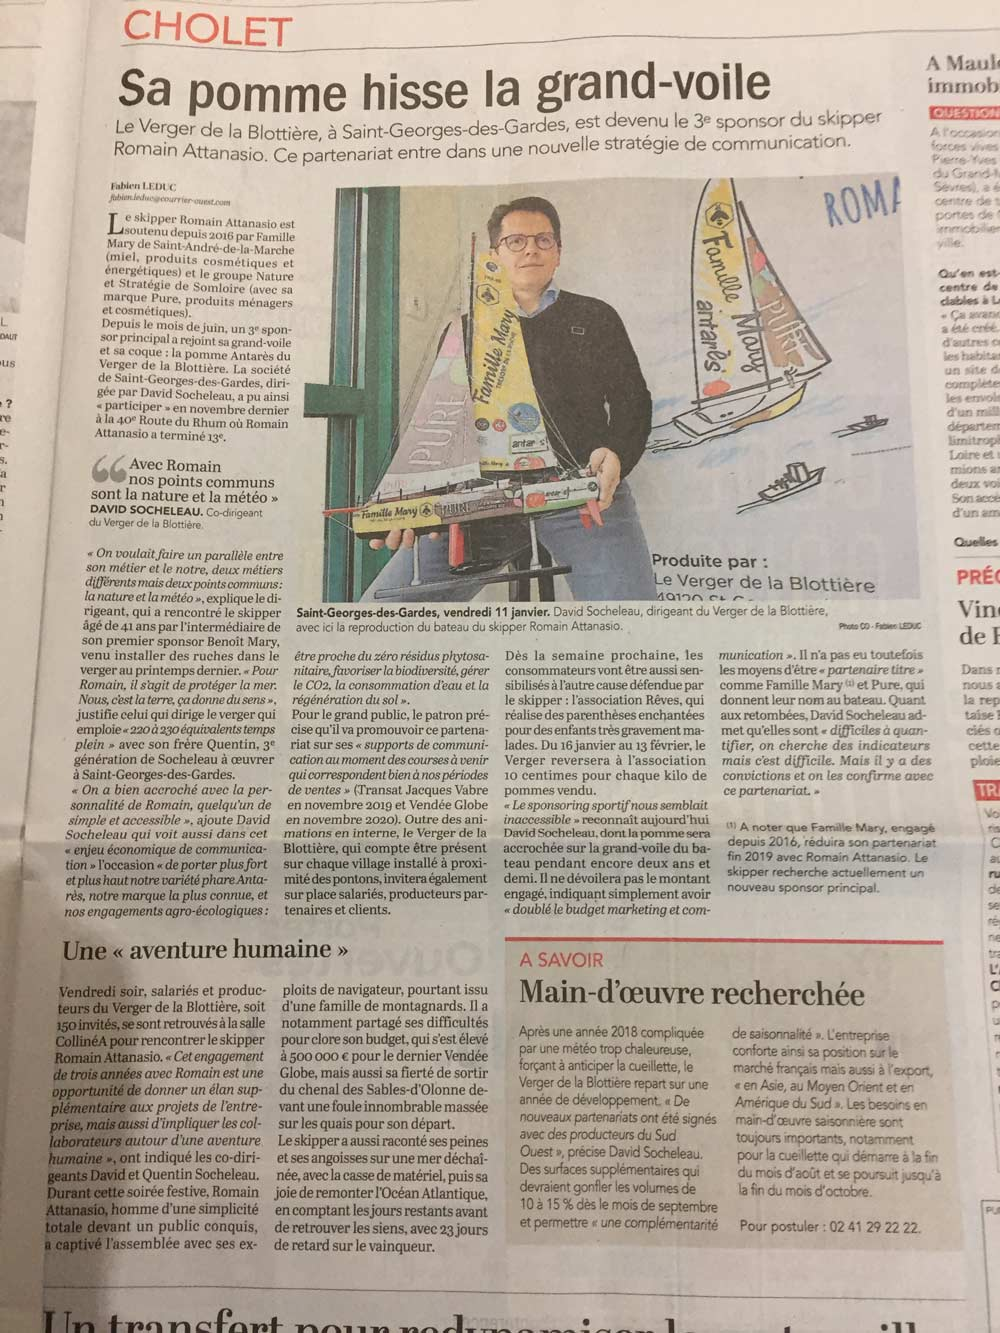 Romain Courrier de l'ouest